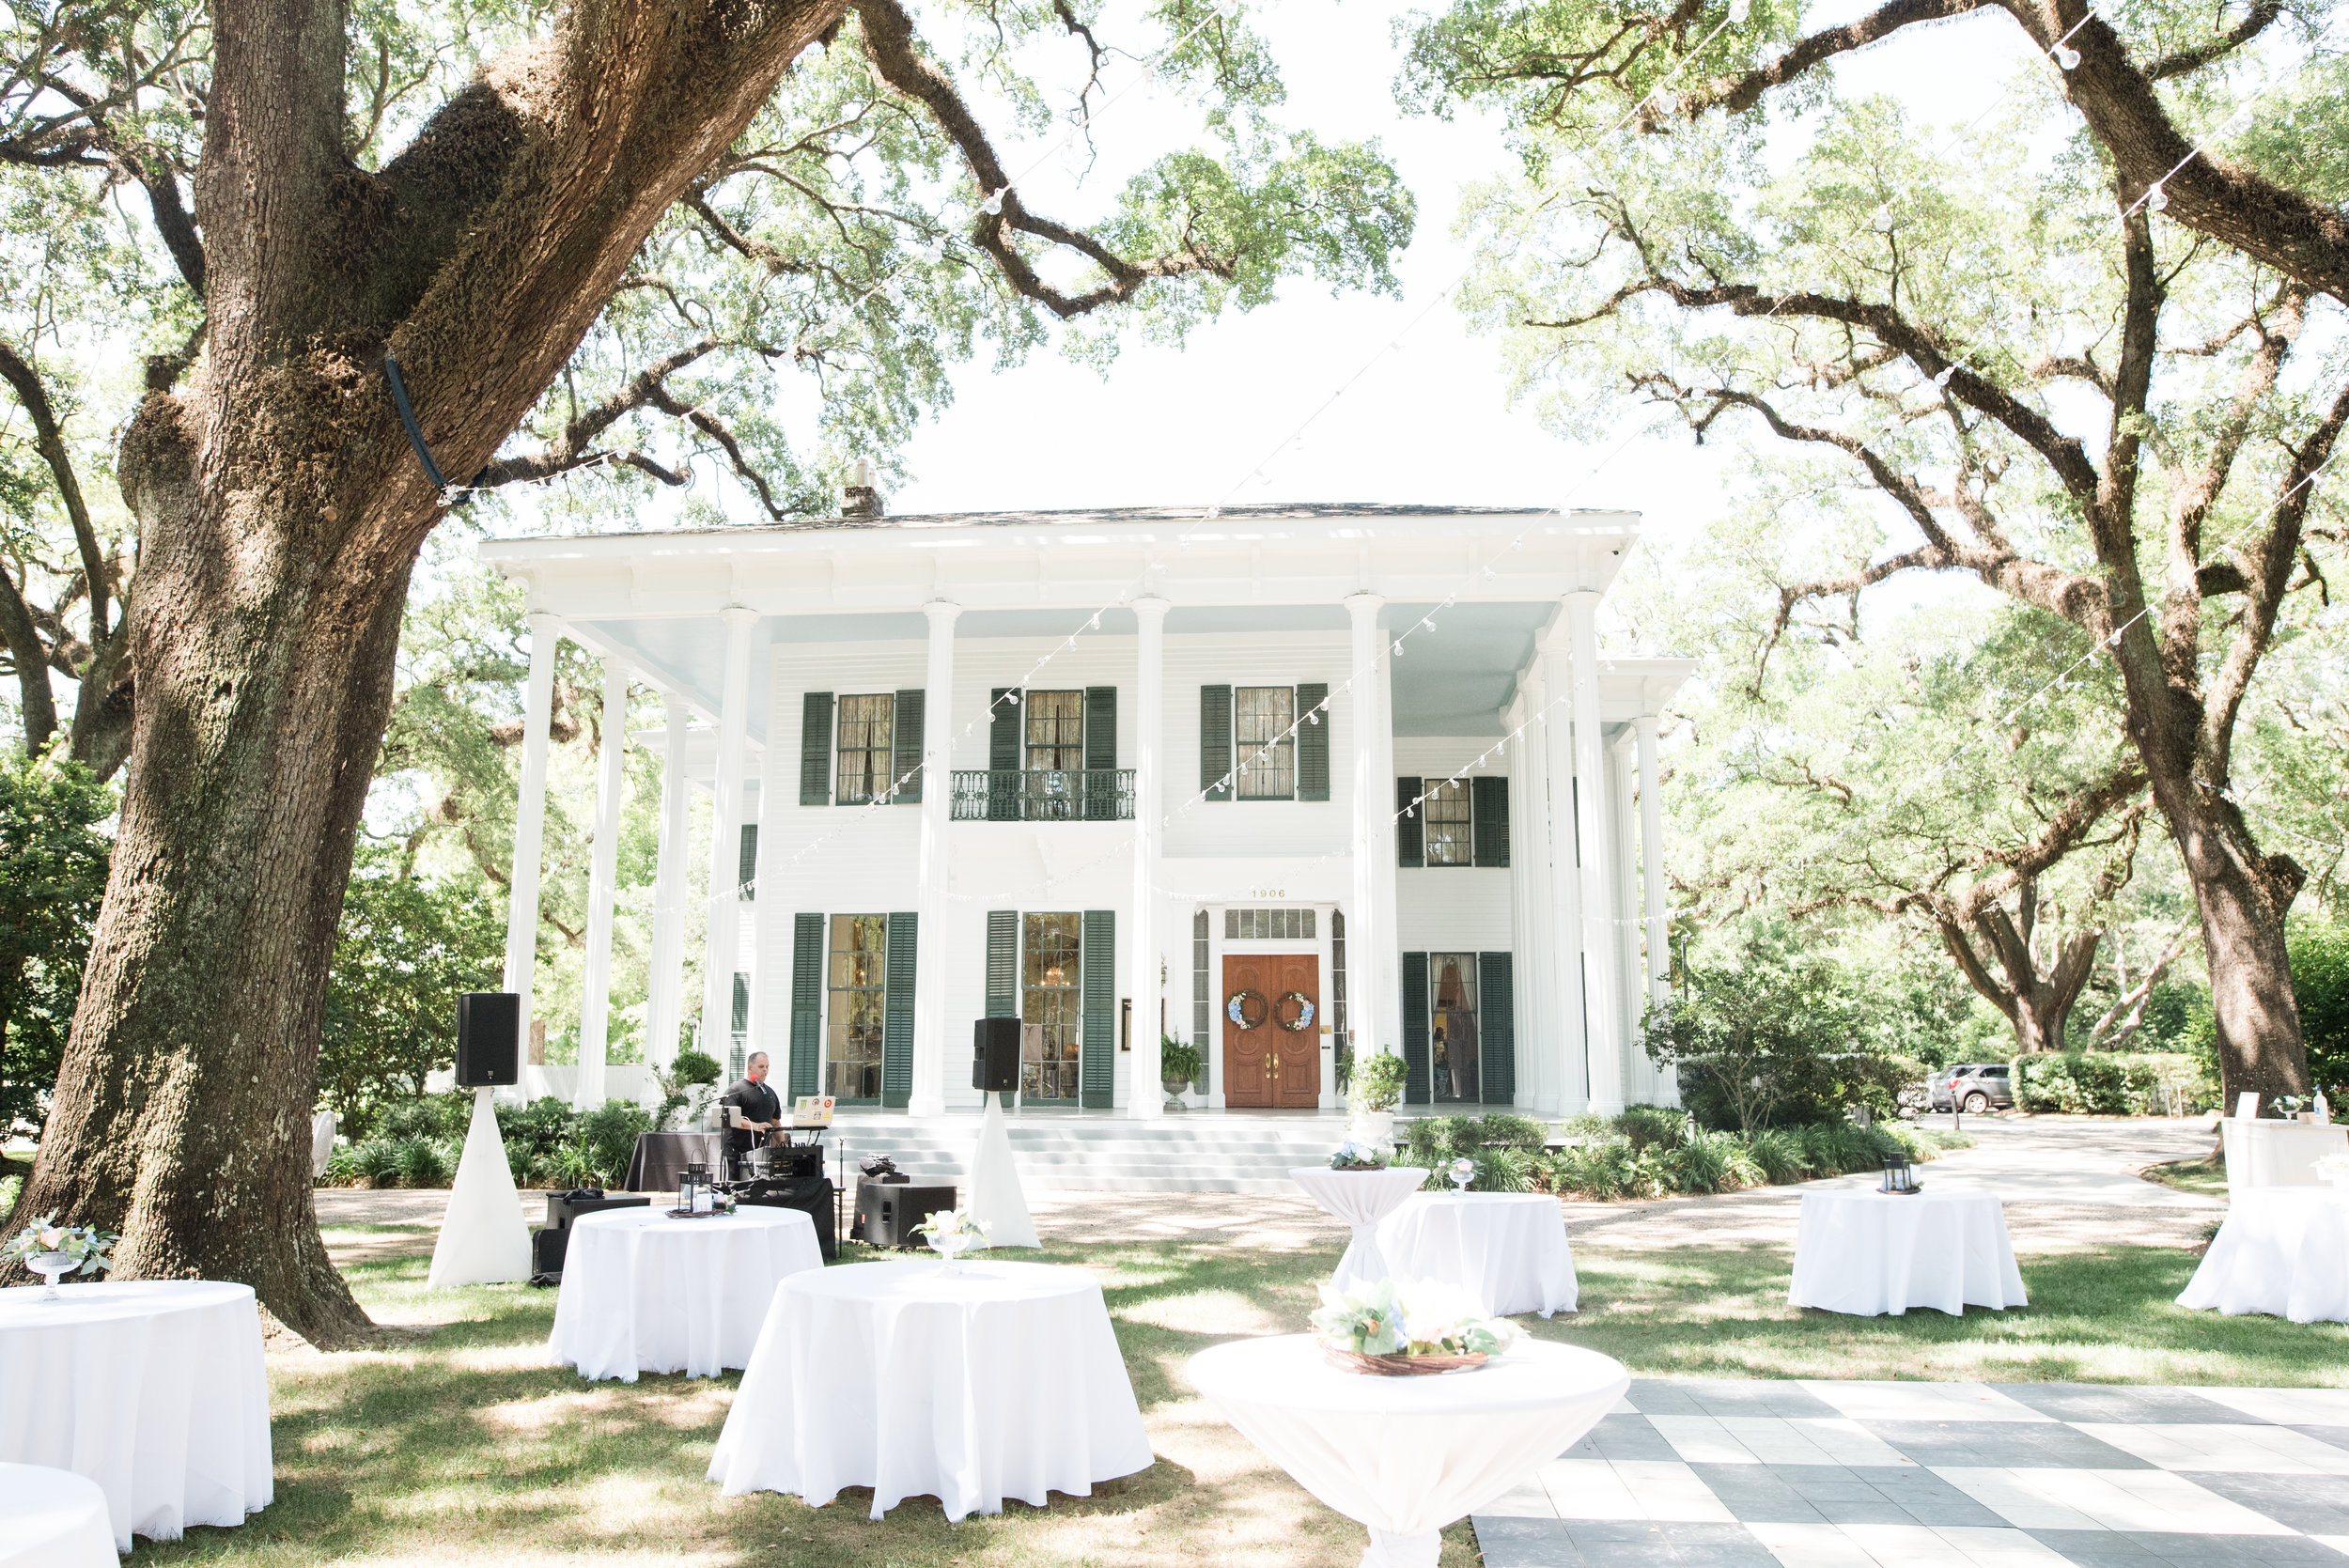 Alyssa and Heath Wedding Venue - the Bragg Mitchell Mansion in Mobile, Alabama on May  25th, 2019